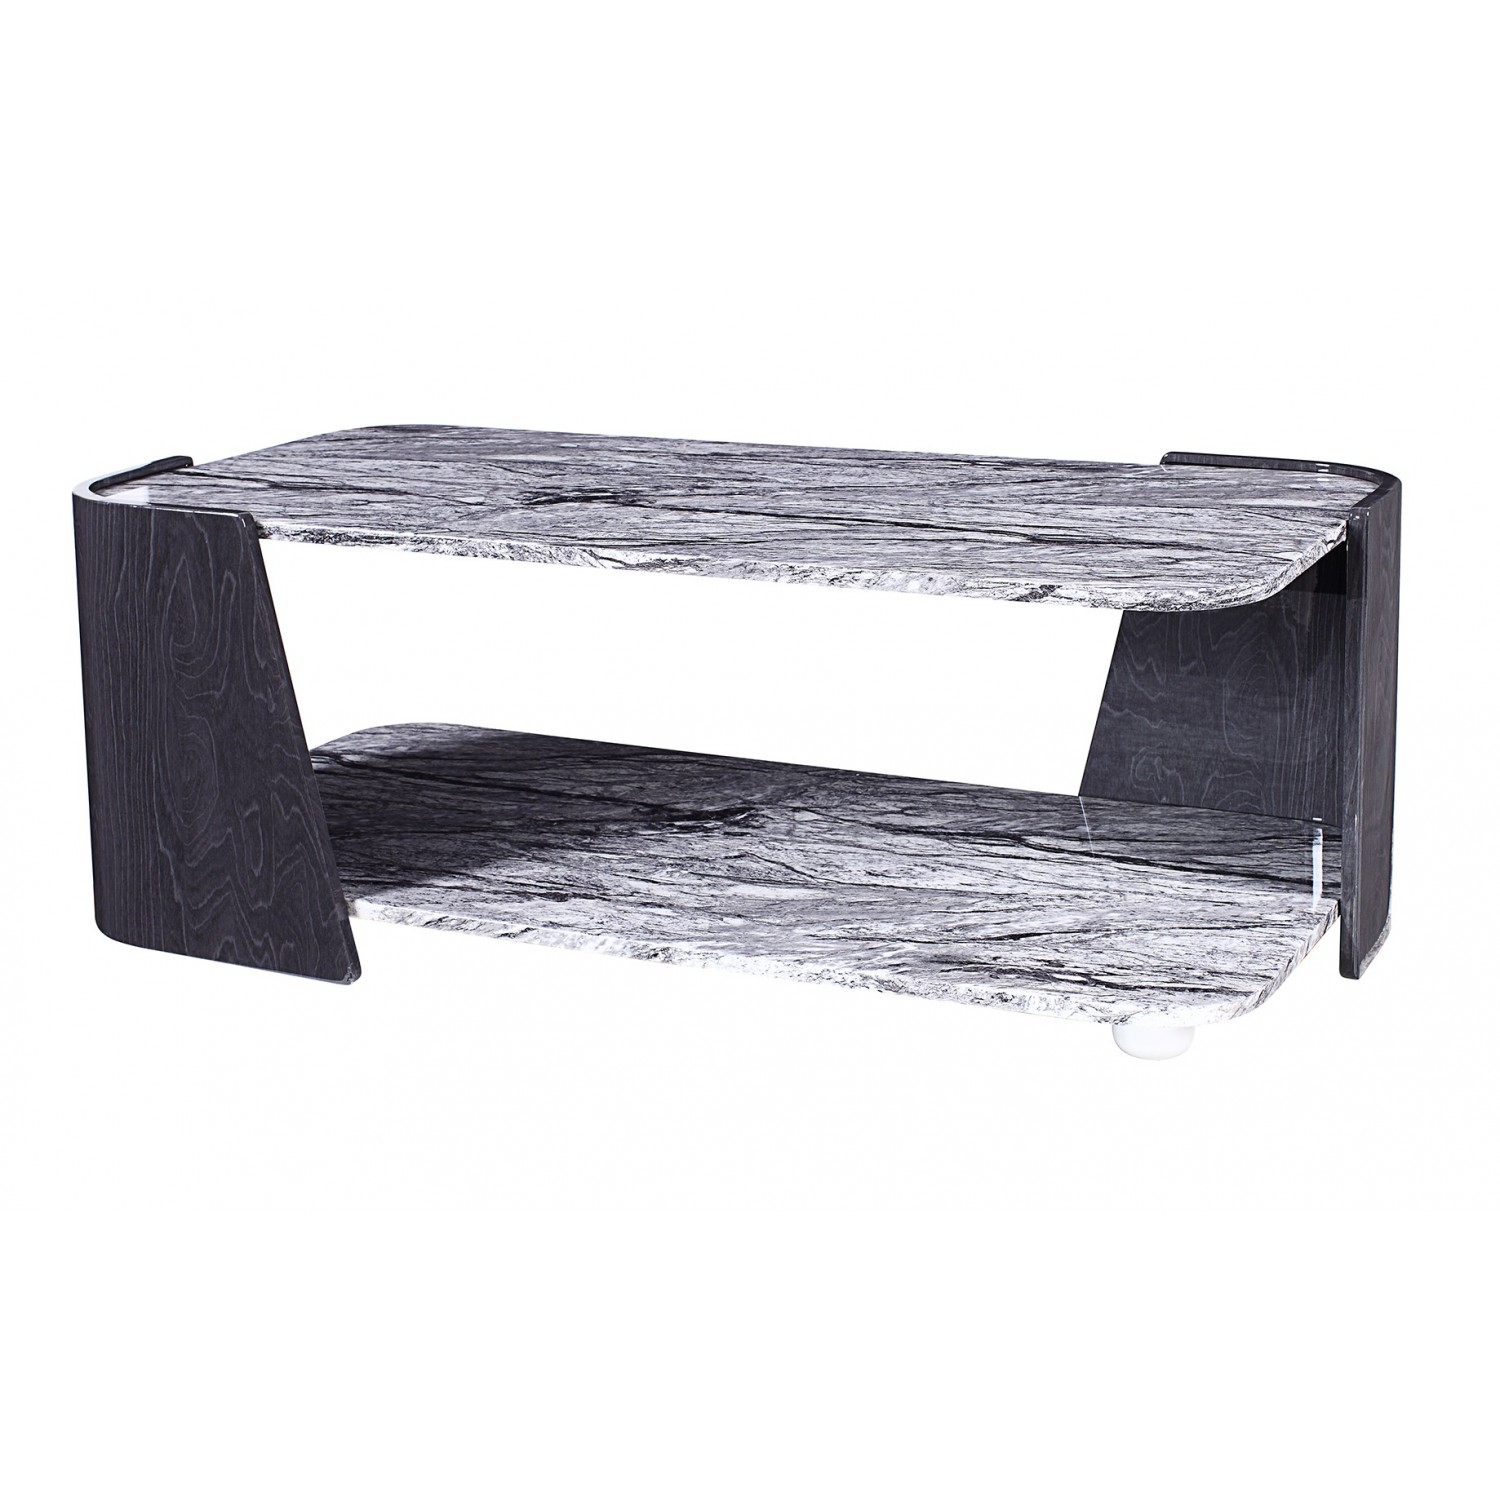 Jual Sorrento Grey Slate Coffee Table Jf907 Oak Furniture House